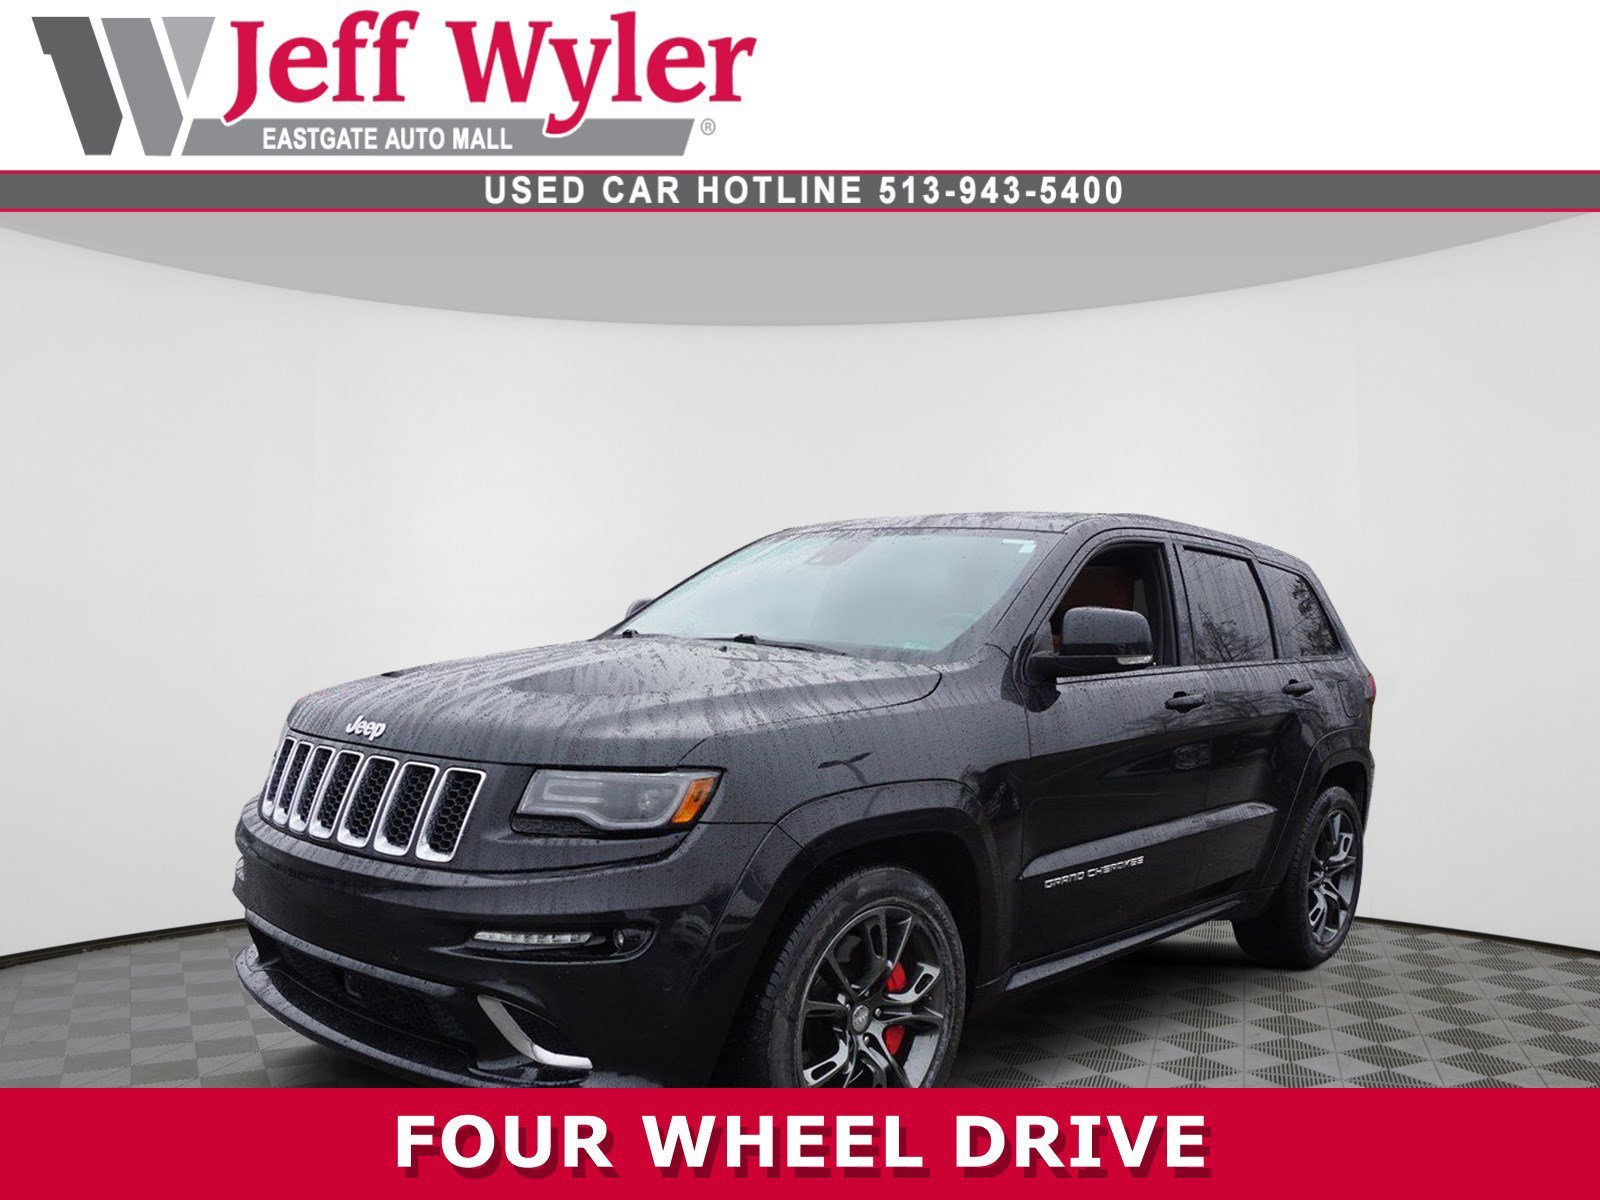 2014 Jeep Grand Cherokee 4WD SRT image